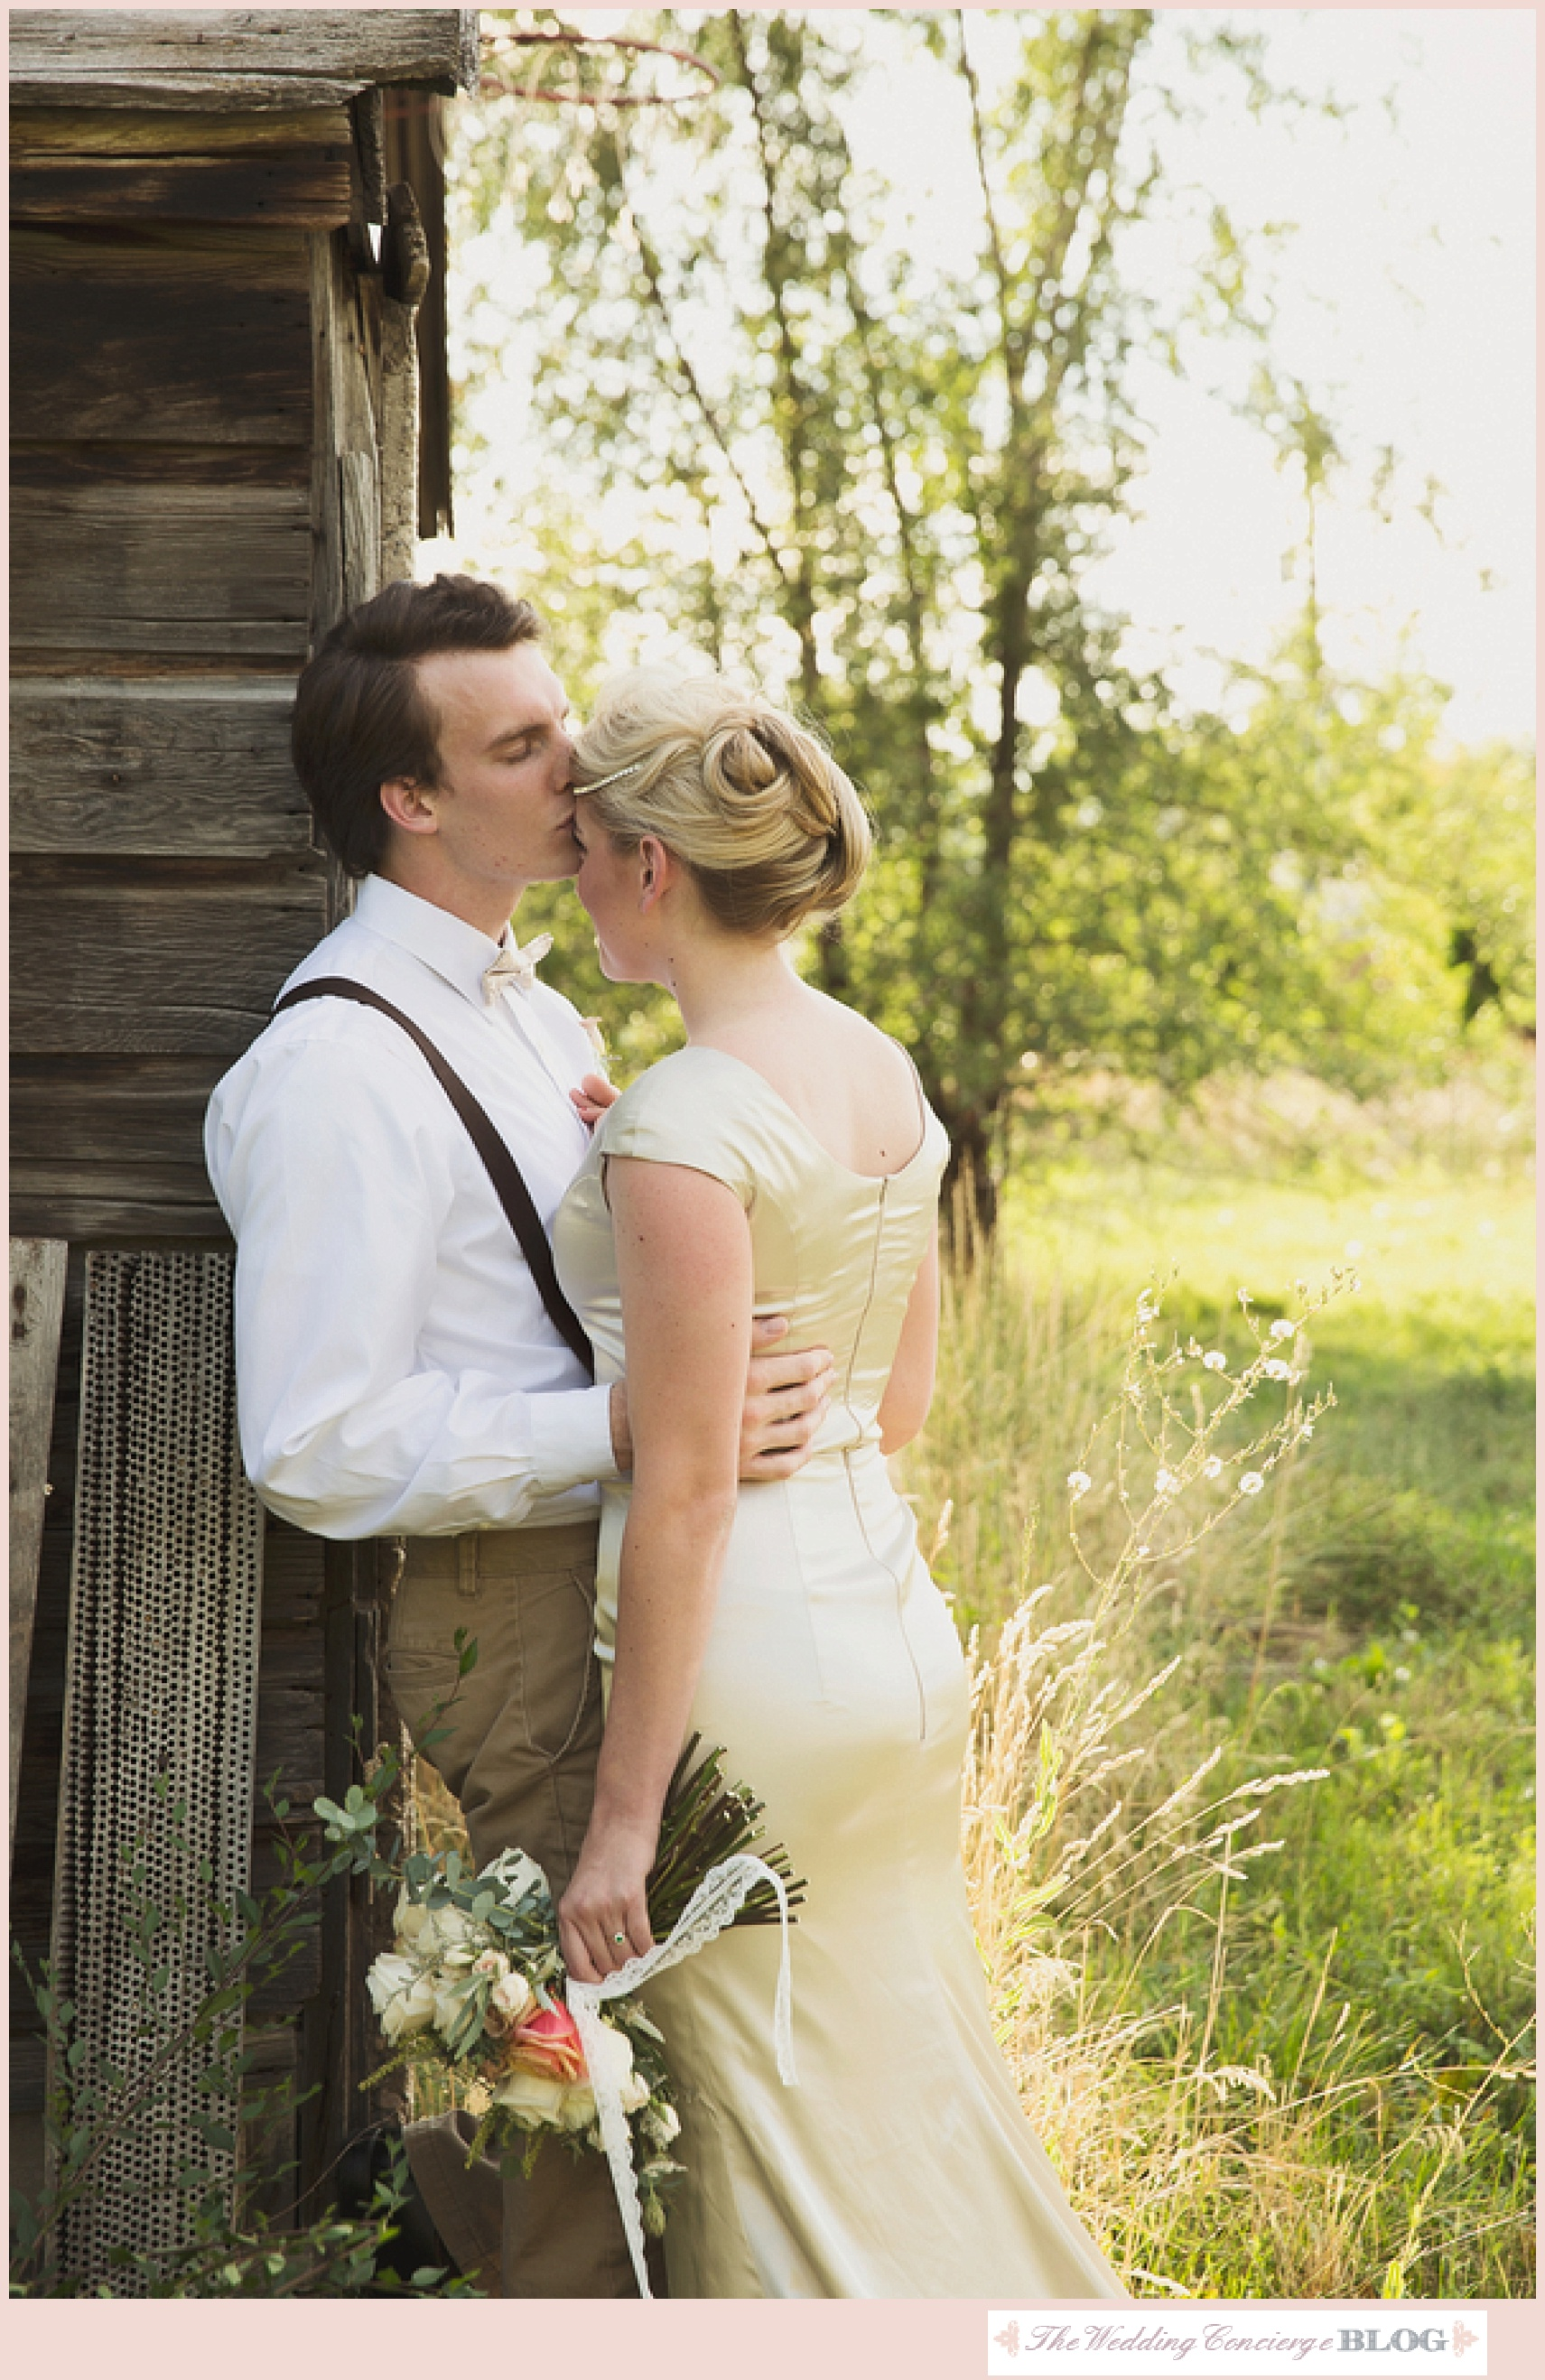 Rustic_Styled_Bridal_Shoot_The_Wedding_Concierge_0047.jpg